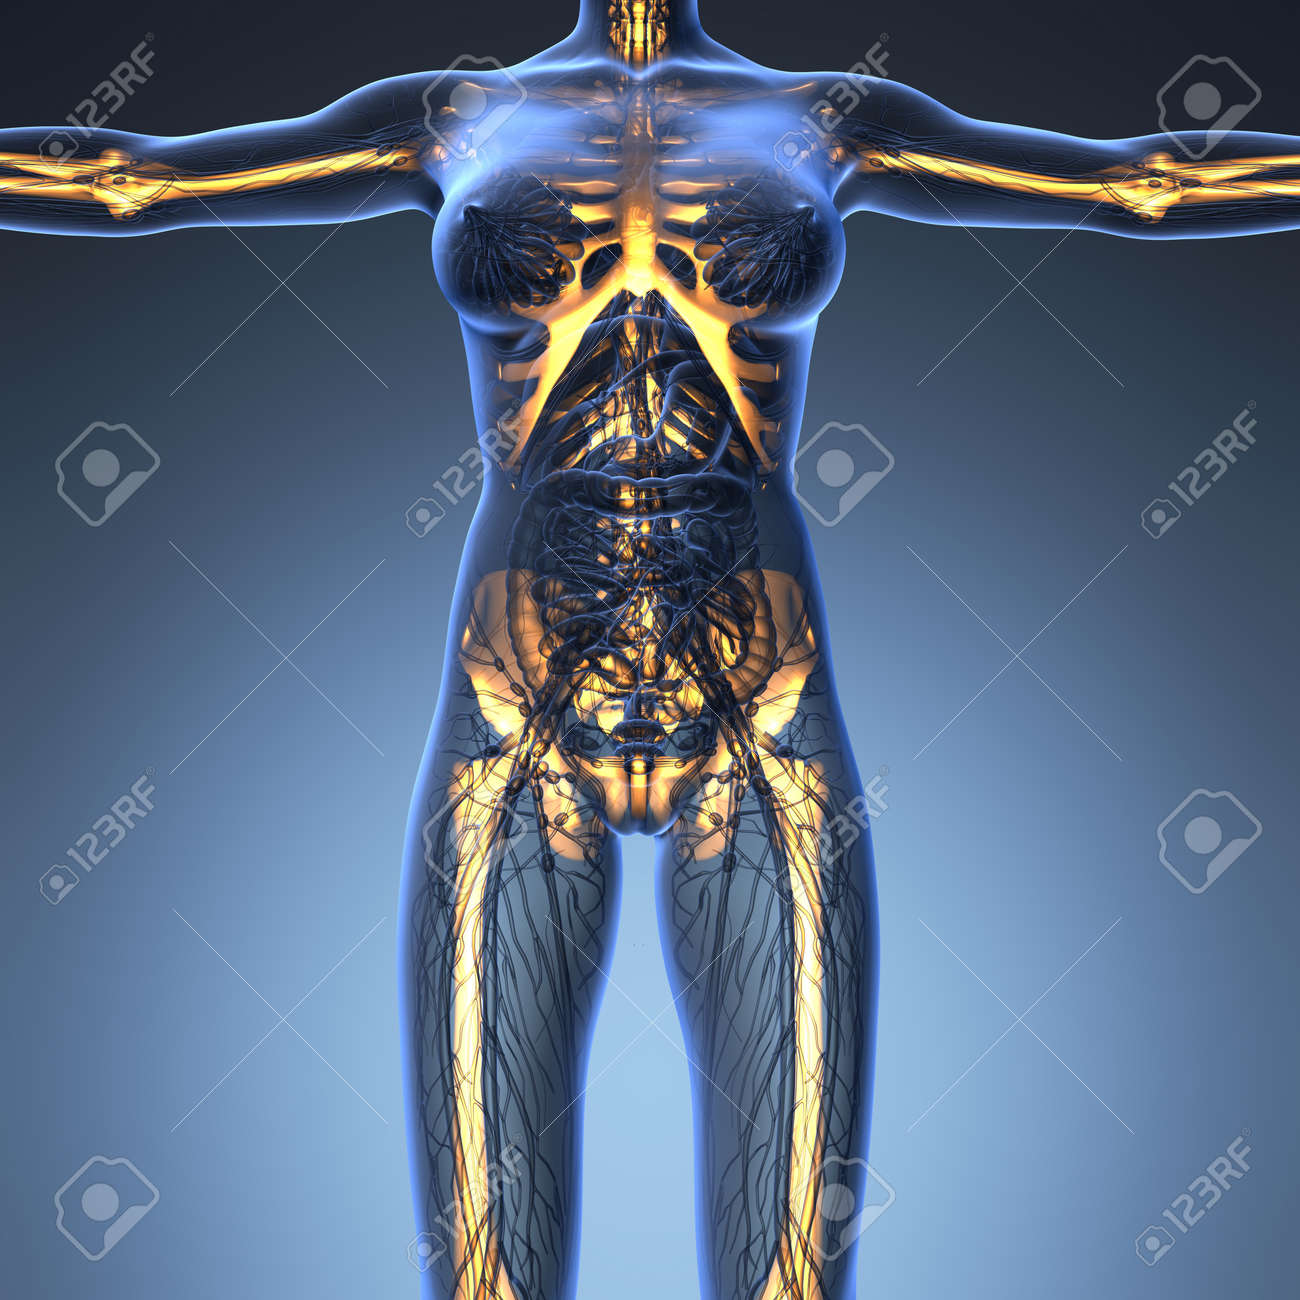 Science Anatomy Of Human Body In X Ray With Glow Skeleton Bones